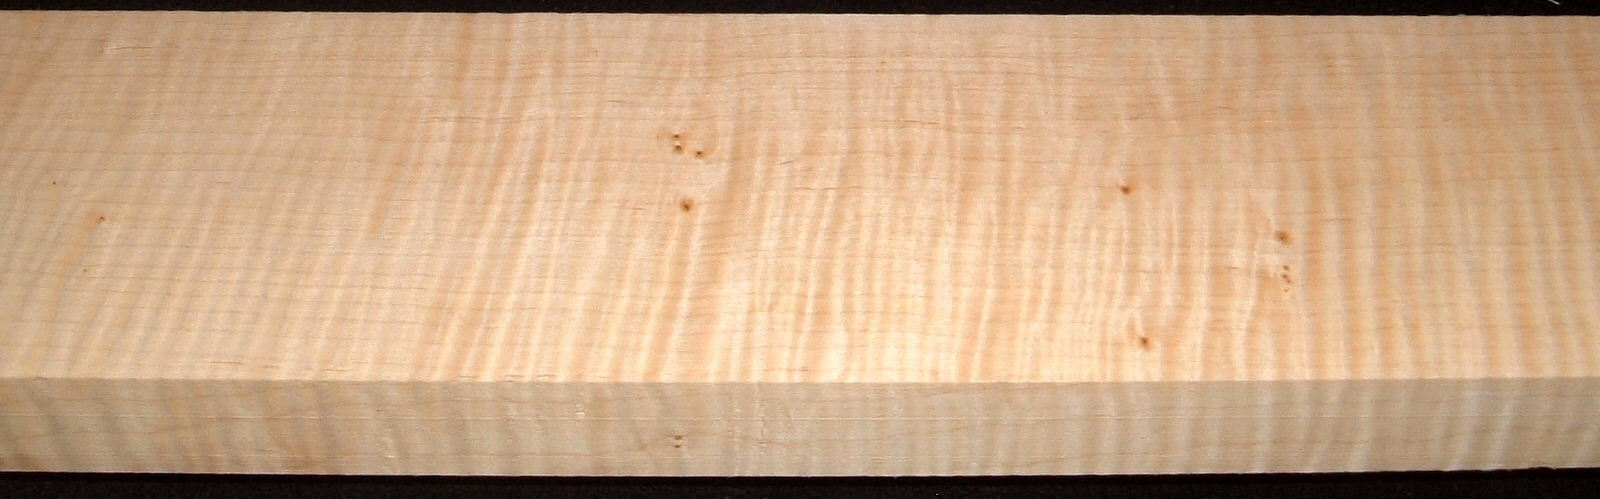 QS2005-16, 1-3/16x3-3/4x47, Quartersawn Curly Maple